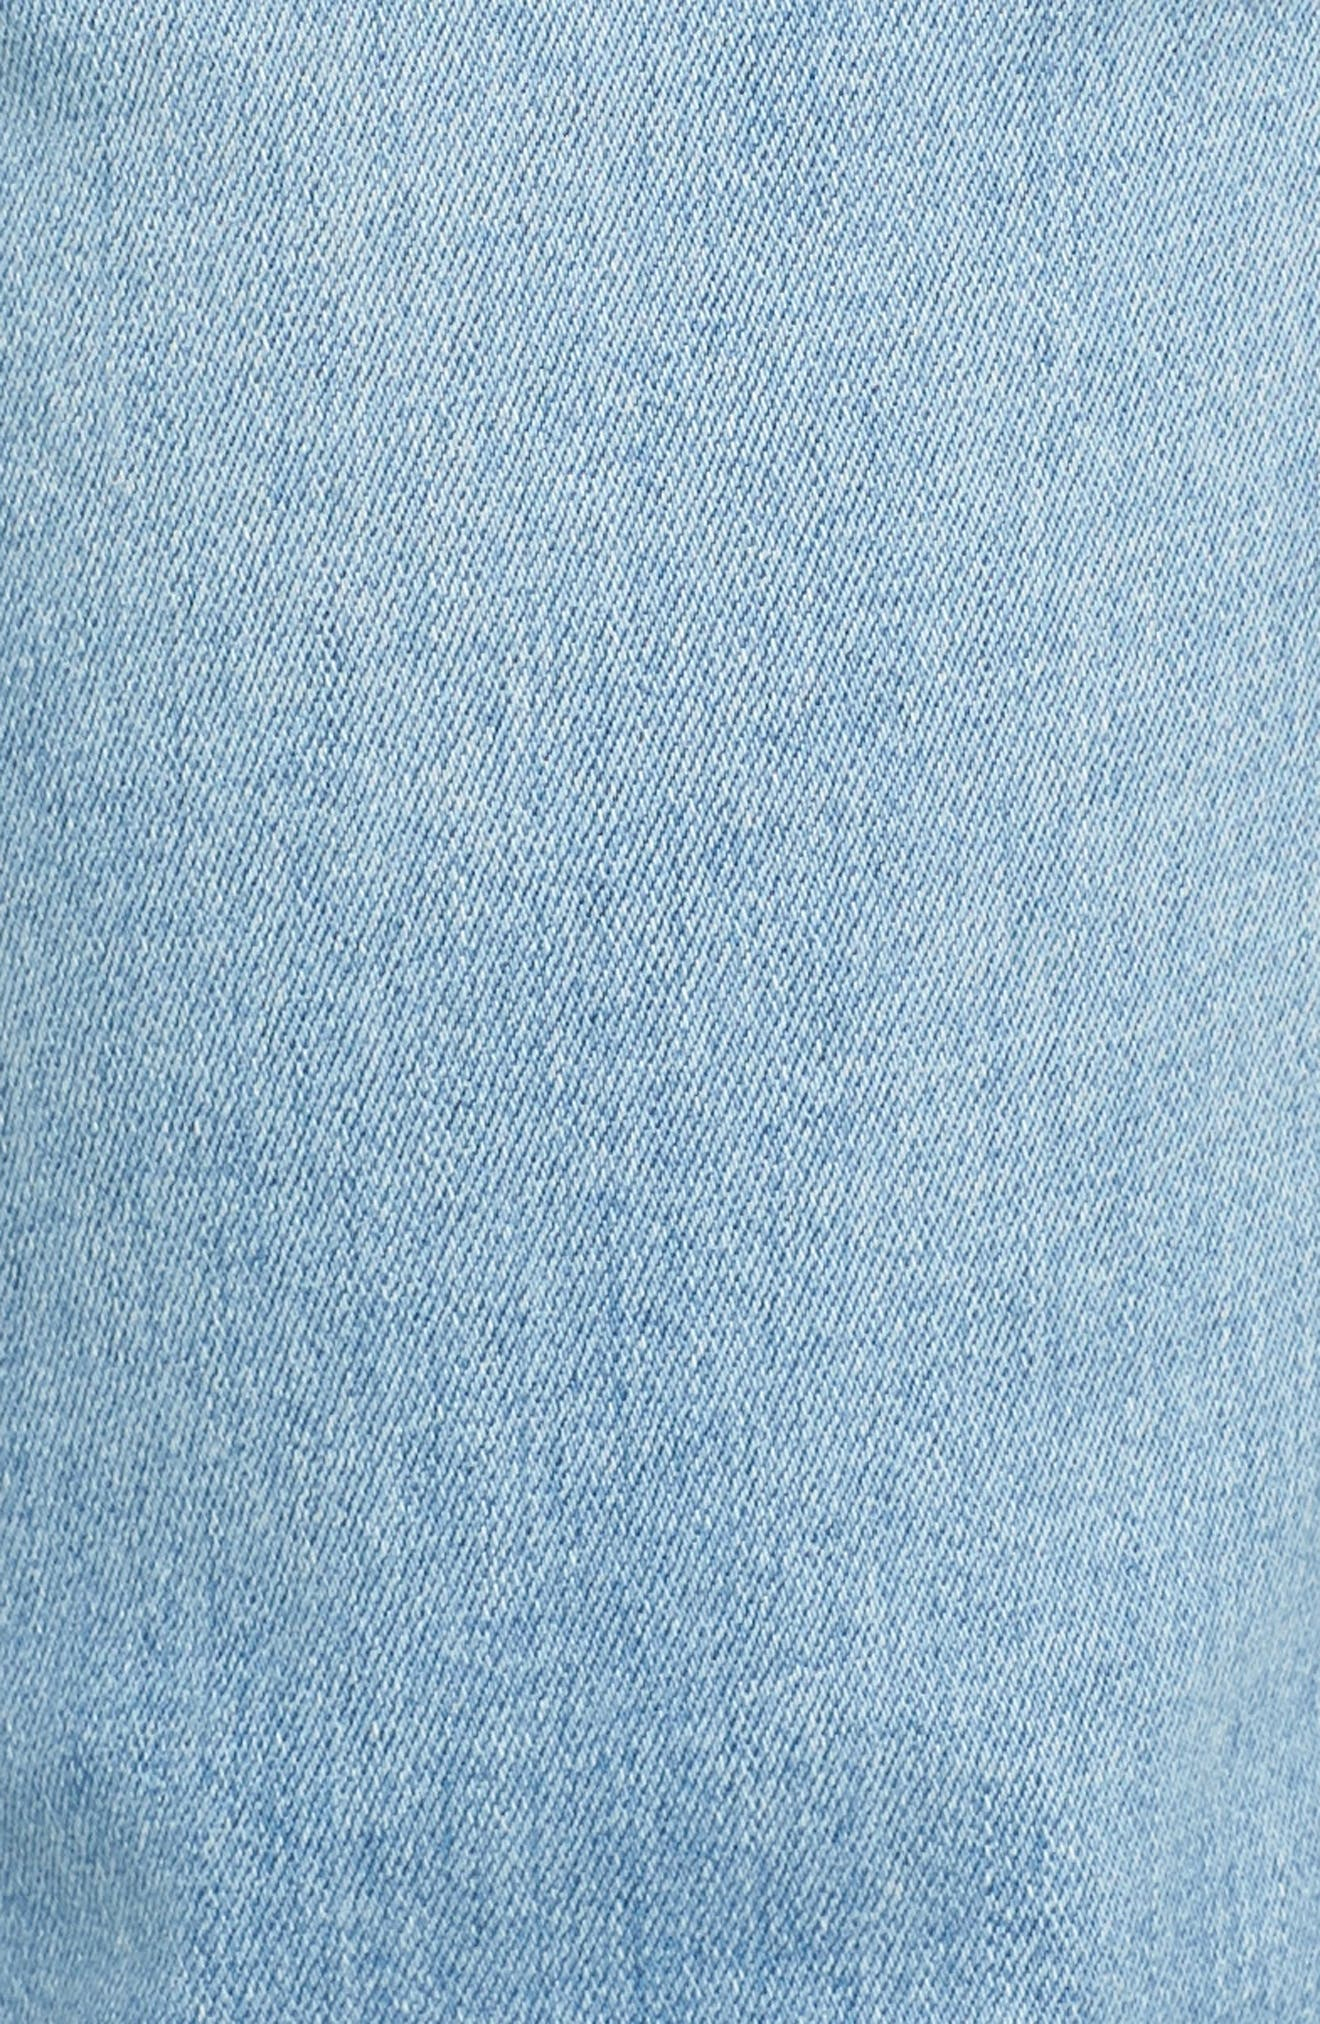 Iggy Skinny Fit Jeans,                             Alternate thumbnail 5, color,                             Surf Bleach